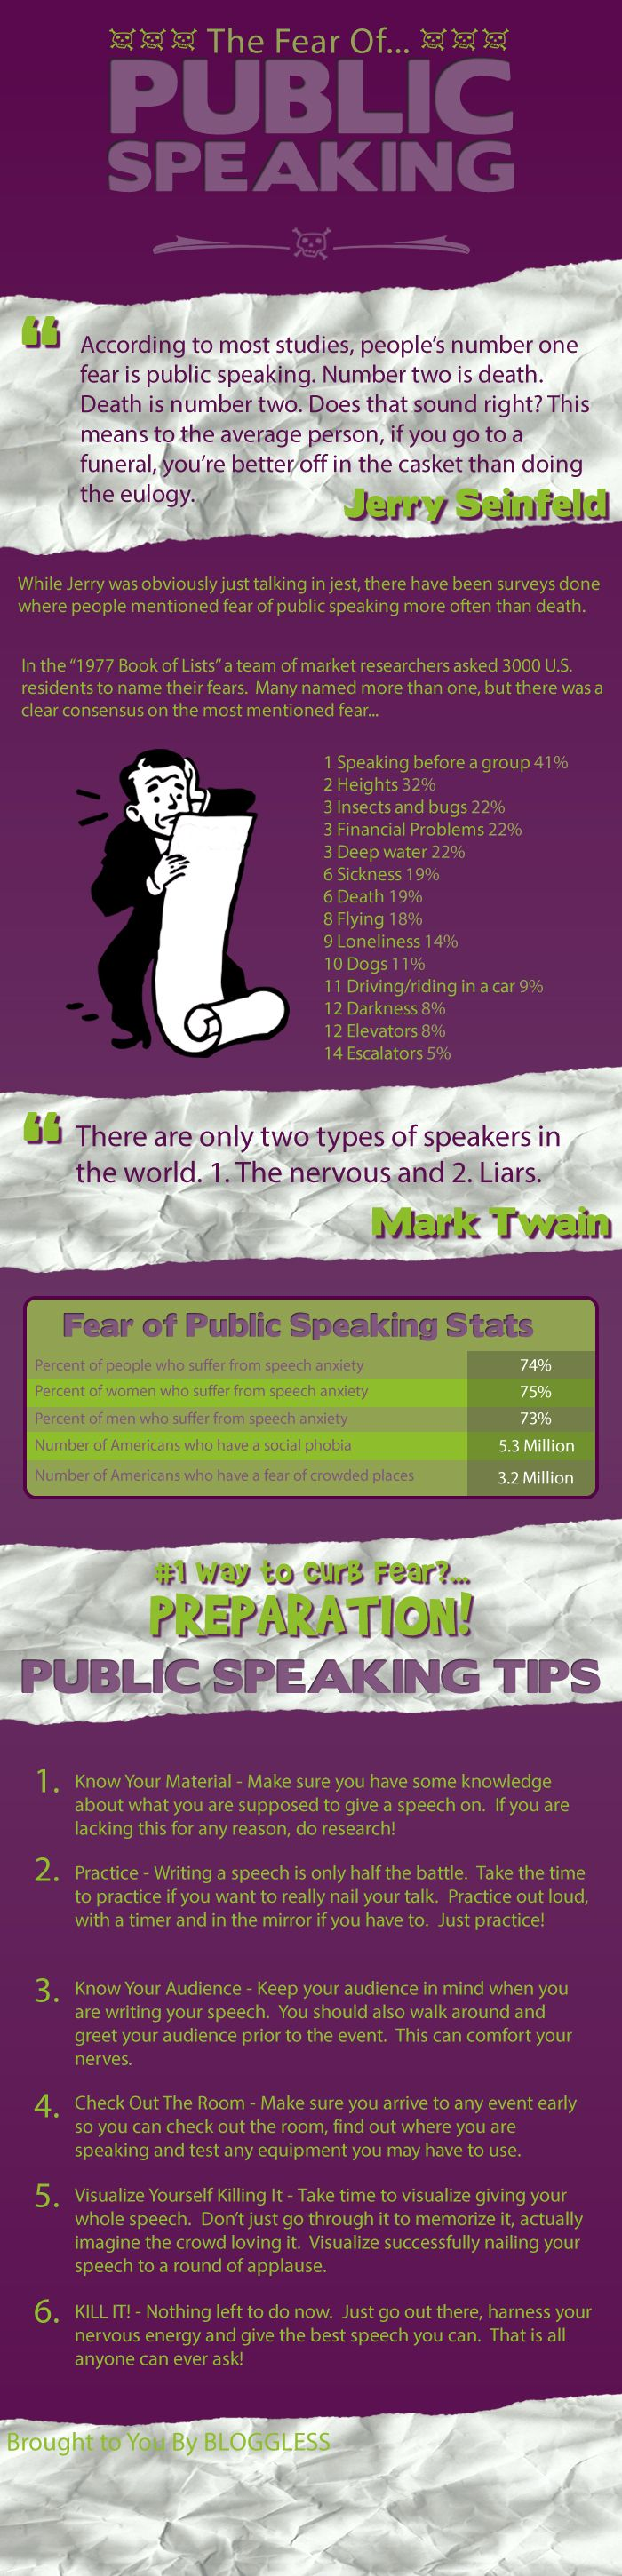 best images about public speaking hate body infographic how to overcome your fear of public speaking growyourselfsuccessful